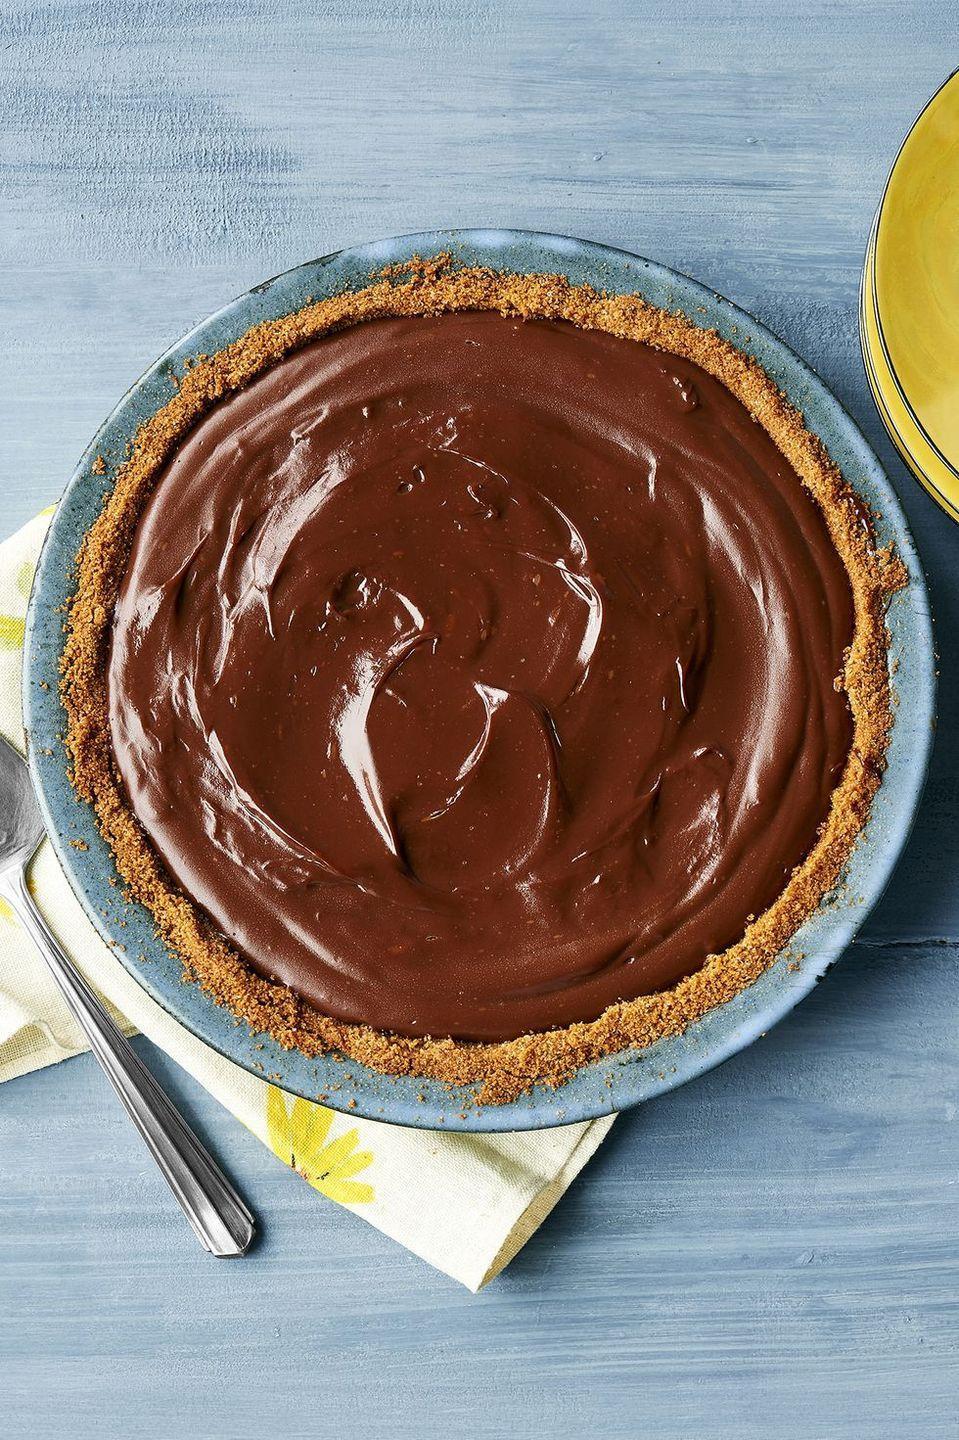 "<p>You can never have enough chocolate on Easter. True choco lovers will adore this silky, rich pie.</p><p><strong><a href=""https://www.thepioneerwoman.com/food-cooking/recipes/a11850/chocolate-pie/"" rel=""nofollow noopener"" target=""_blank"" data-ylk=""slk:Get Ree's recipe."" class=""link rapid-noclick-resp"">Get Ree's recipe.</a></strong></p><p><strong><a class=""link rapid-noclick-resp"" href=""https://go.redirectingat.com?id=74968X1596630&url=https%3A%2F%2Fwww.walmart.com%2Fsearch%2F%3Fquery%3Dpioneer%2Bwoman%2Bpie%2Bplate&sref=https%3A%2F%2Fwww.thepioneerwoman.com%2Ffood-cooking%2Fmeals-menus%2Fg35408493%2Feaster-desserts%2F"" rel=""nofollow noopener"" target=""_blank"" data-ylk=""slk:SHOP PIE PLATES"">SHOP PIE PLATES</a><br></strong></p>"